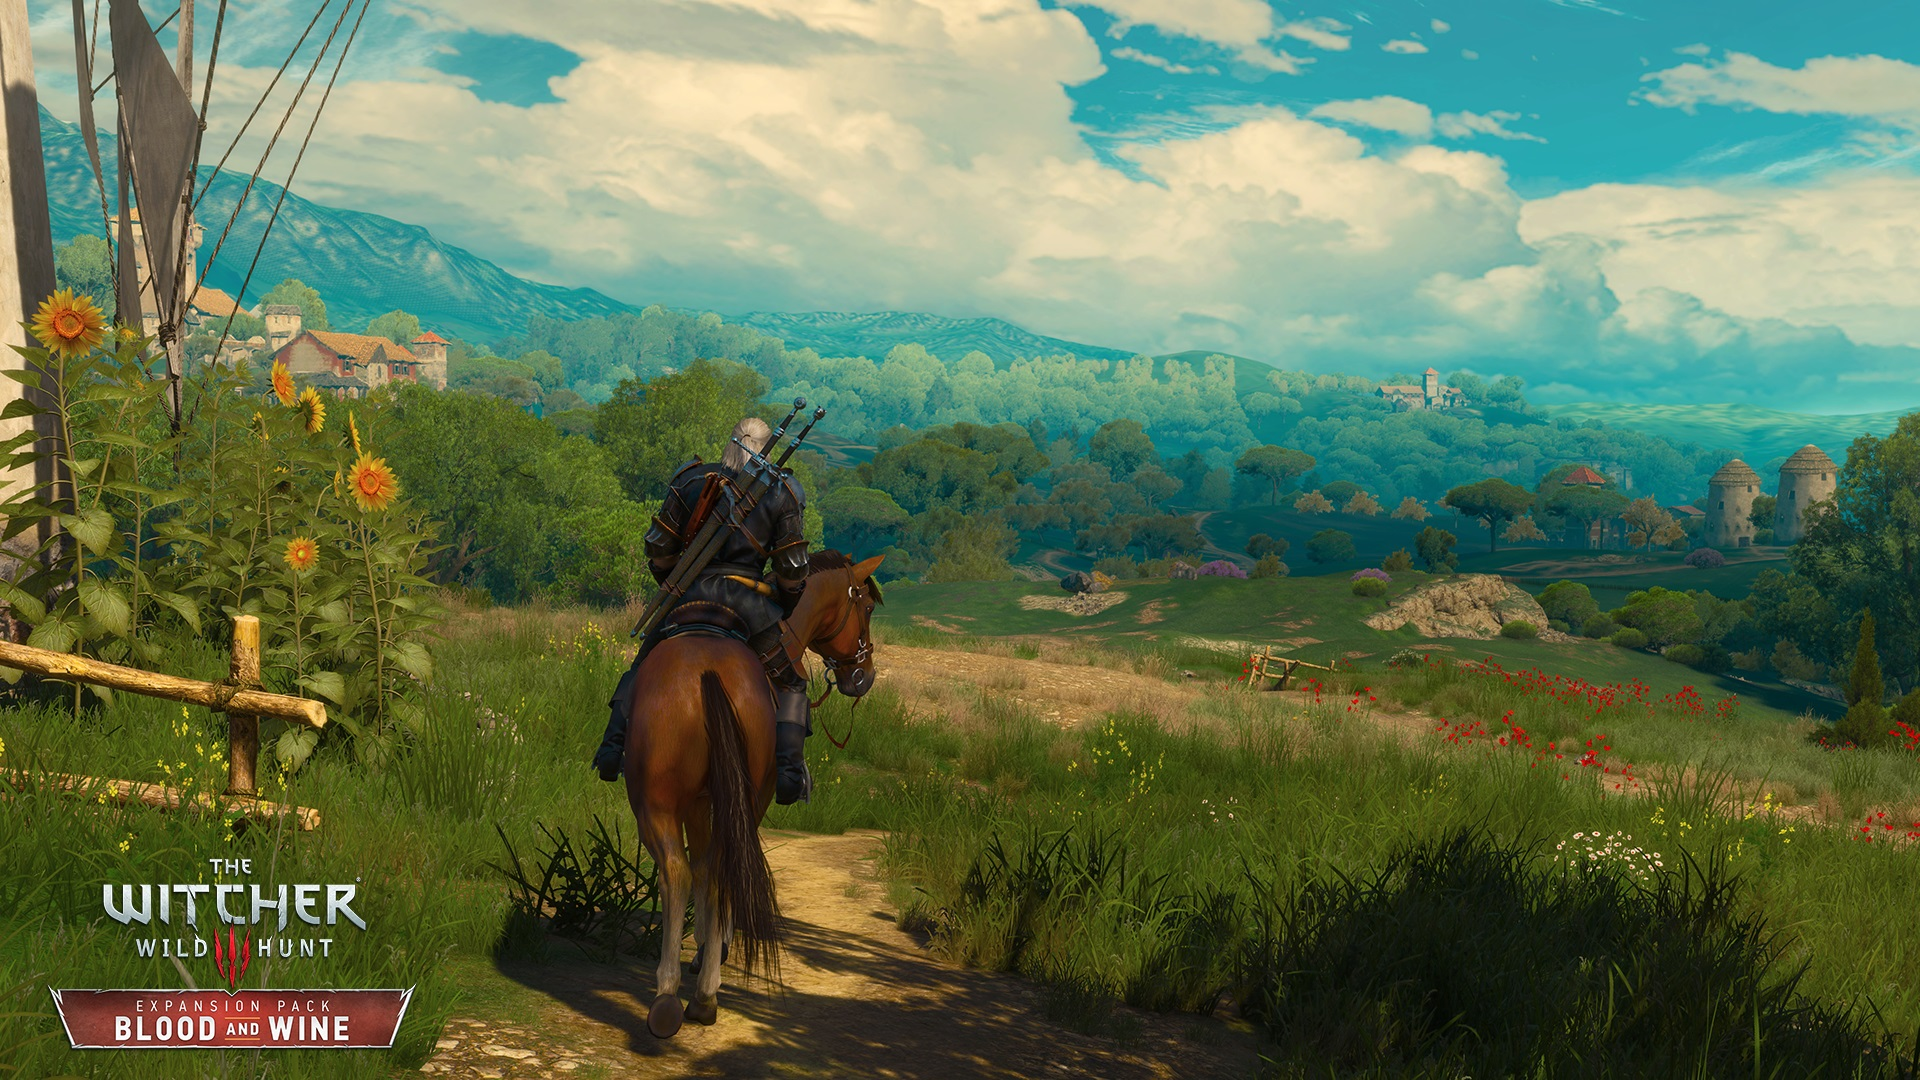 The Witcher 3 Blood And Wine Trailer Gives Us A Tour Of Toussaint